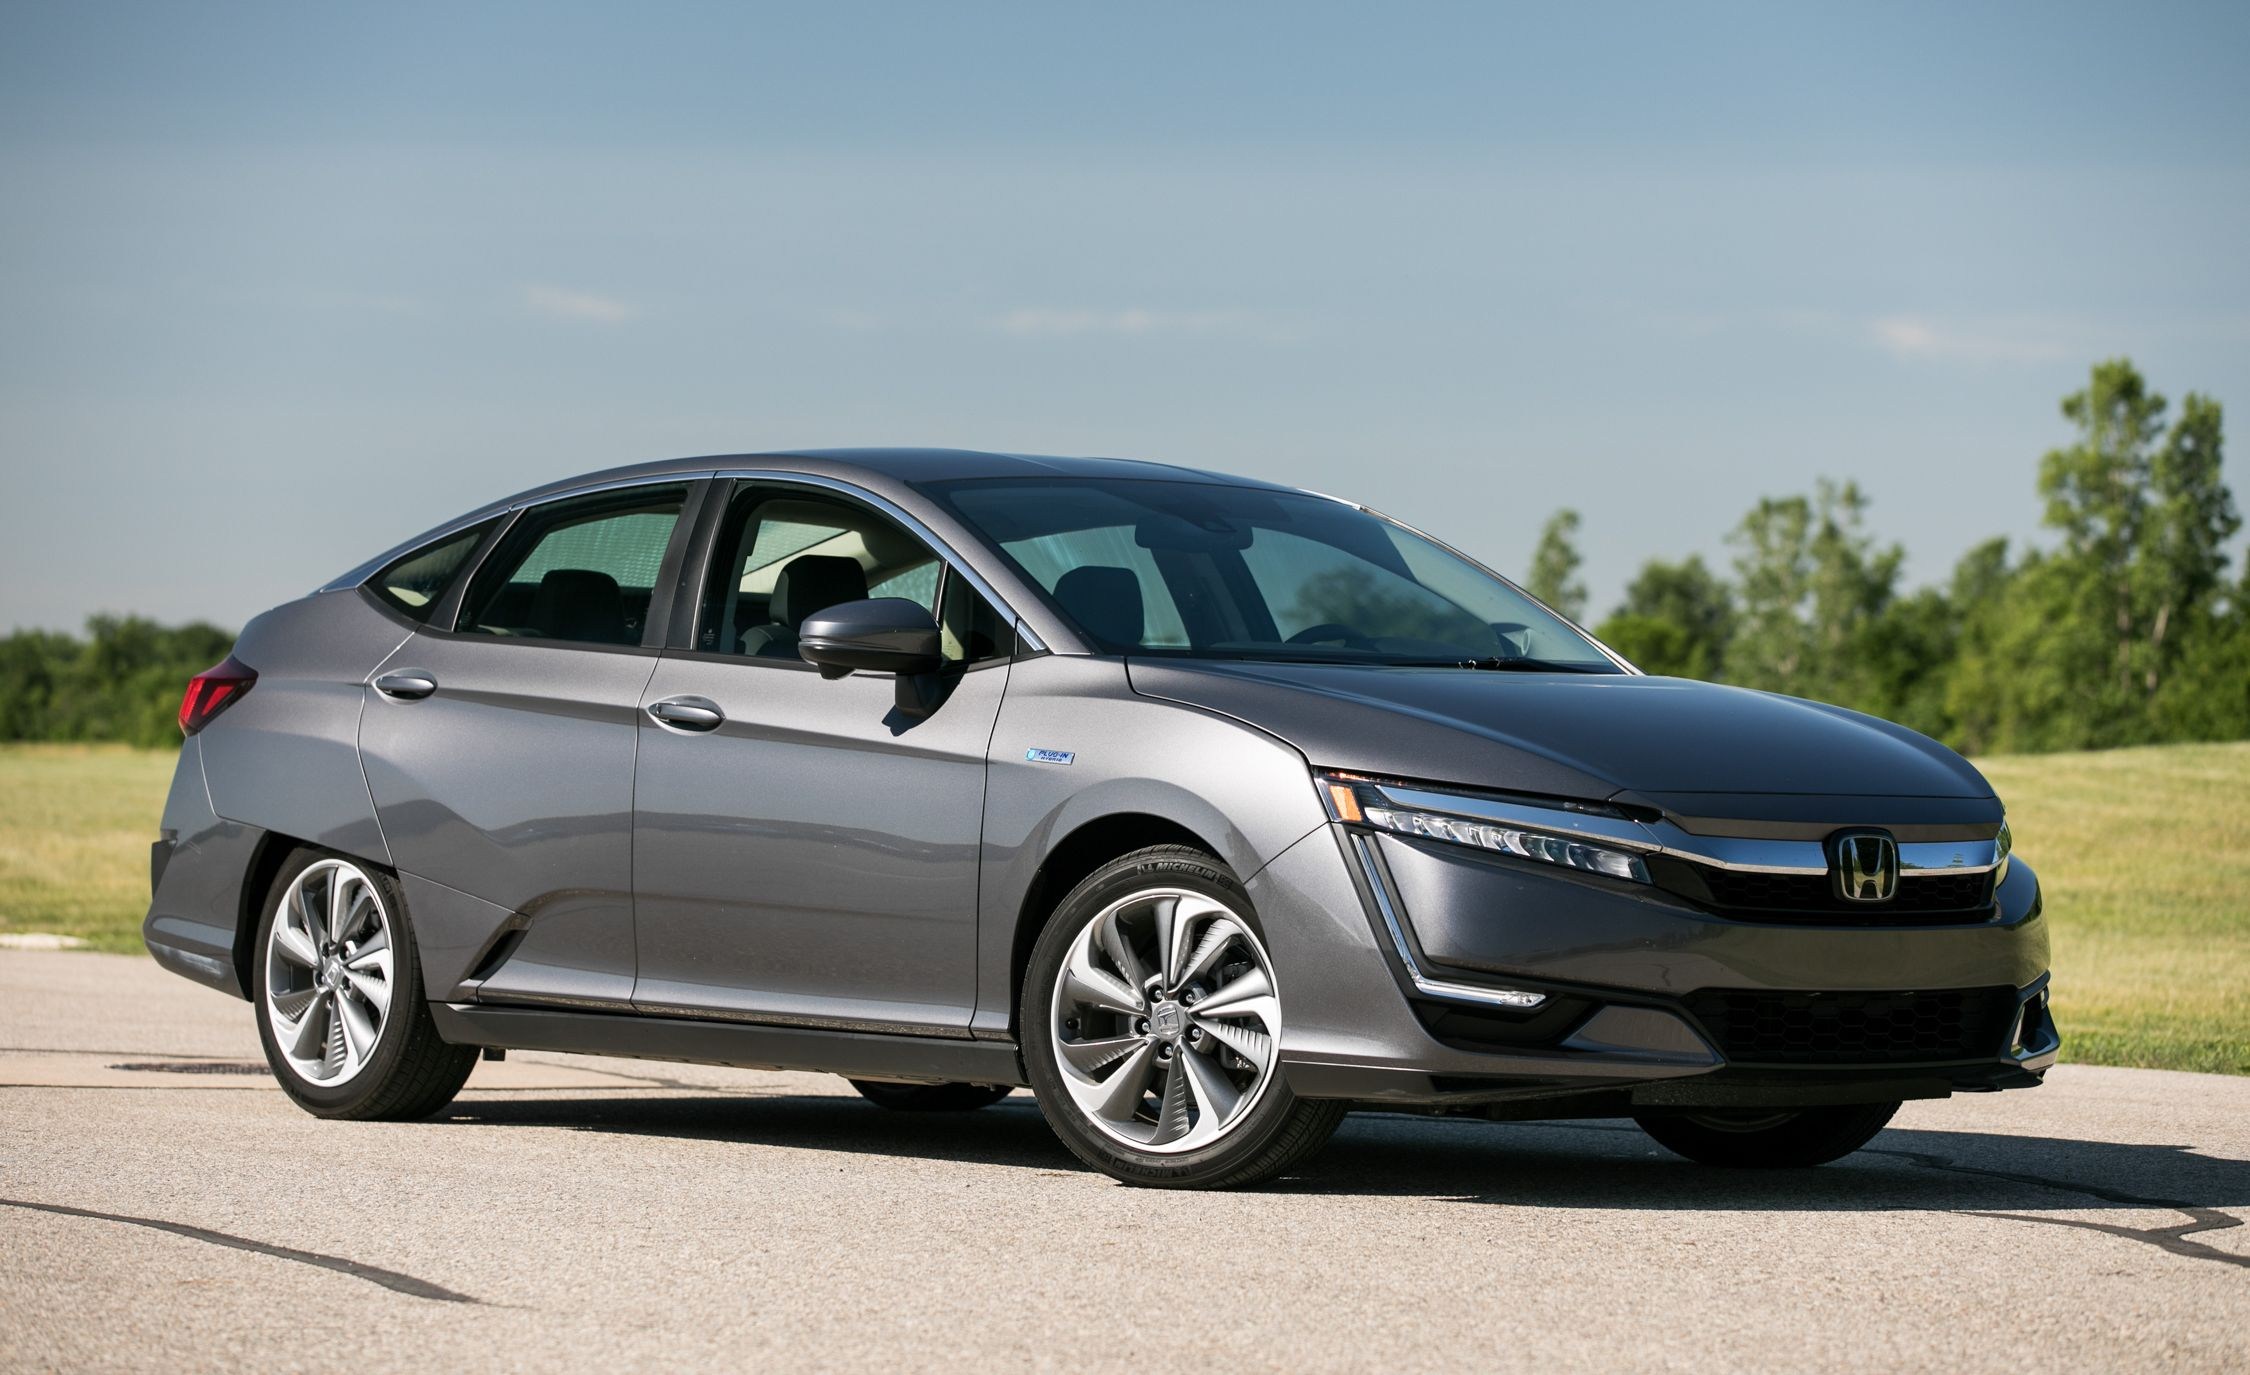 Captivating Honda Clarity Reviews | Honda Clarity Price, Photos, And Specs | Car And  Driver